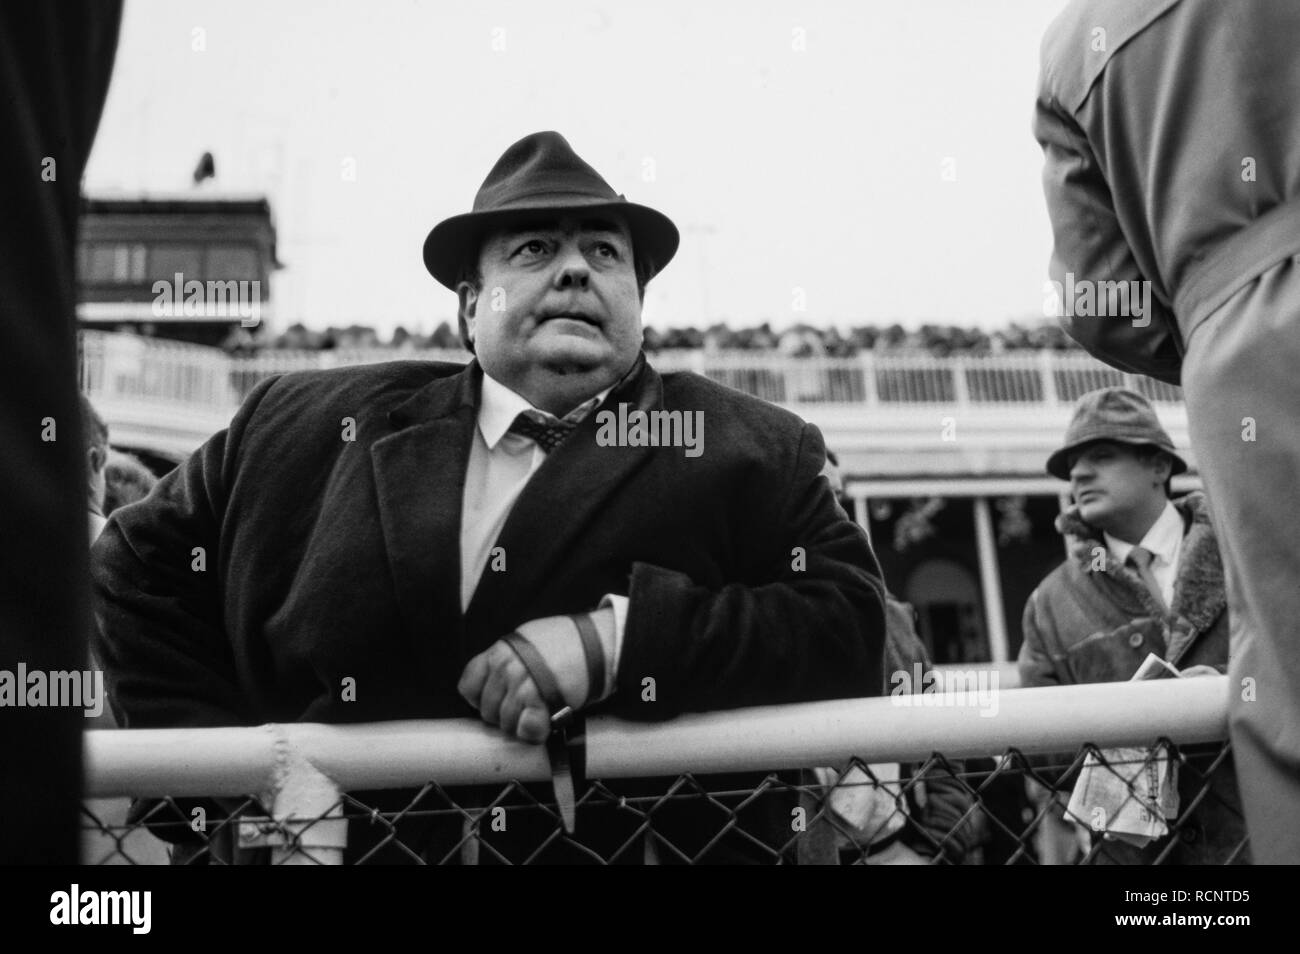 Grand National Aintree Immagini   Grand National Aintree Fotos Stock ... 0250d5257465